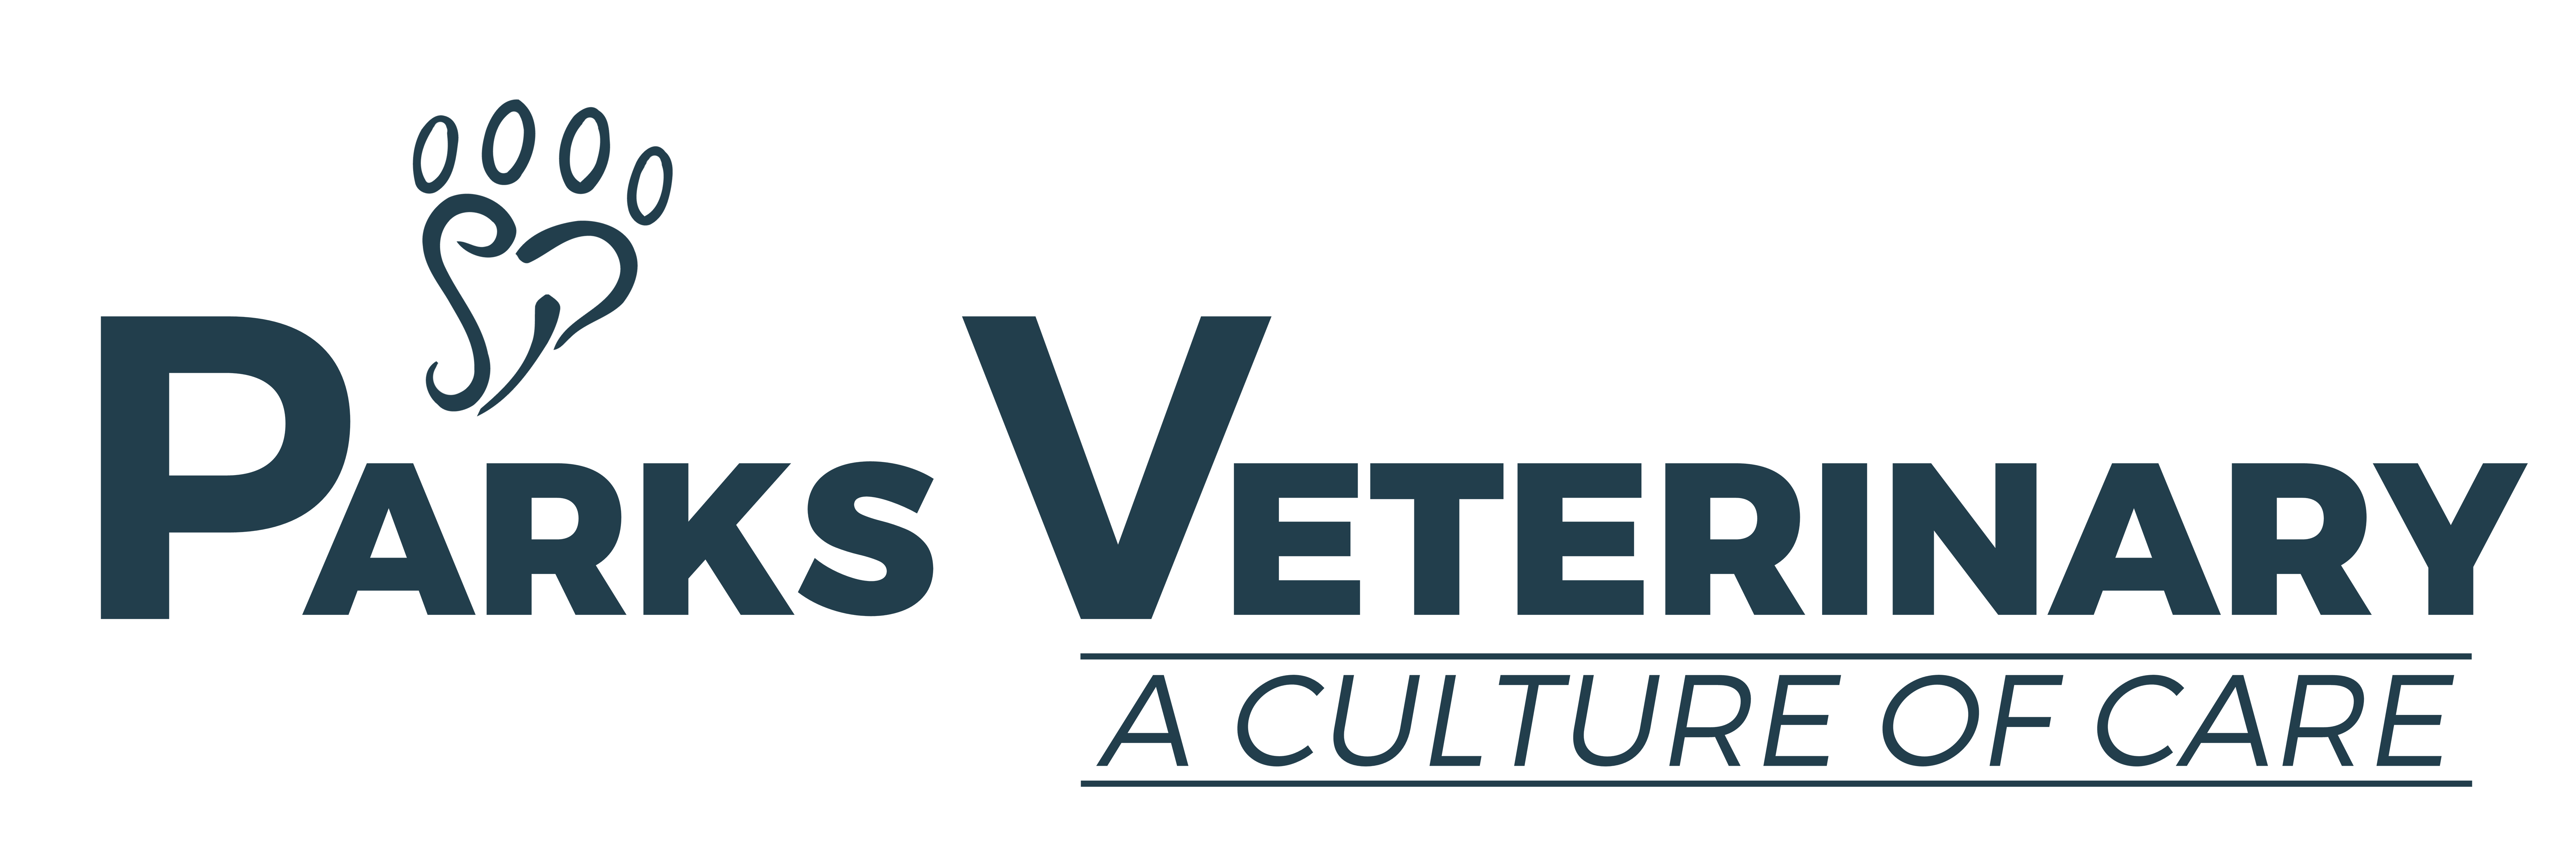 Watch the job video below to learn more about the career opening Full Time Veterinarian at Parks Veterinary in TBD